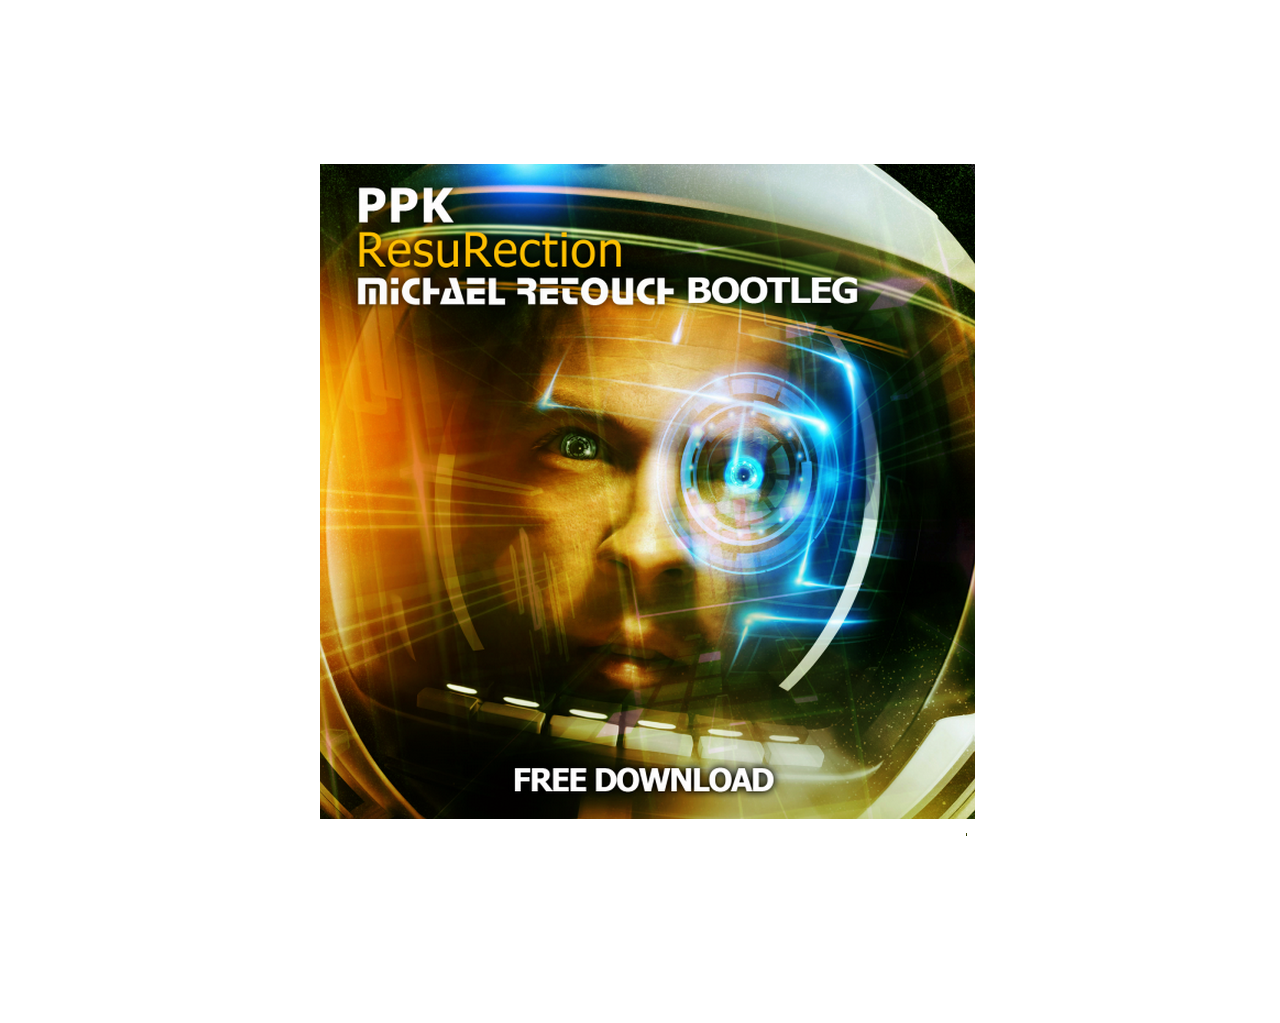 PPK - ResuRection (Michael Retouch Bootleg) [FREE DOWNLOAD]